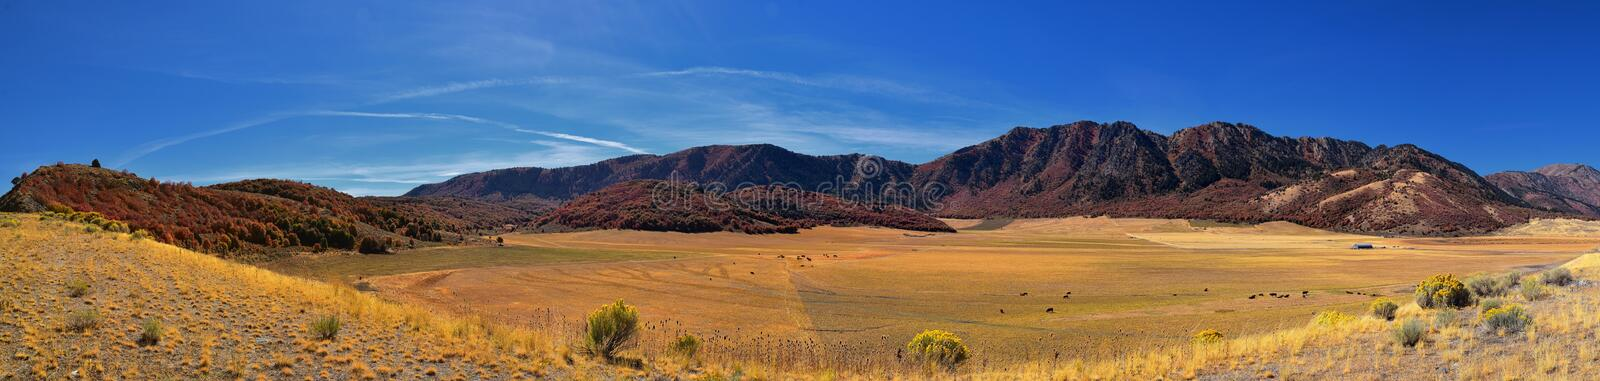 Box Elder Canyon landscape views, popularly known as Sardine Canyon, North of Brigham City within the western slopes of the Wellsv. Ille Mountains, by Logan in stock photography